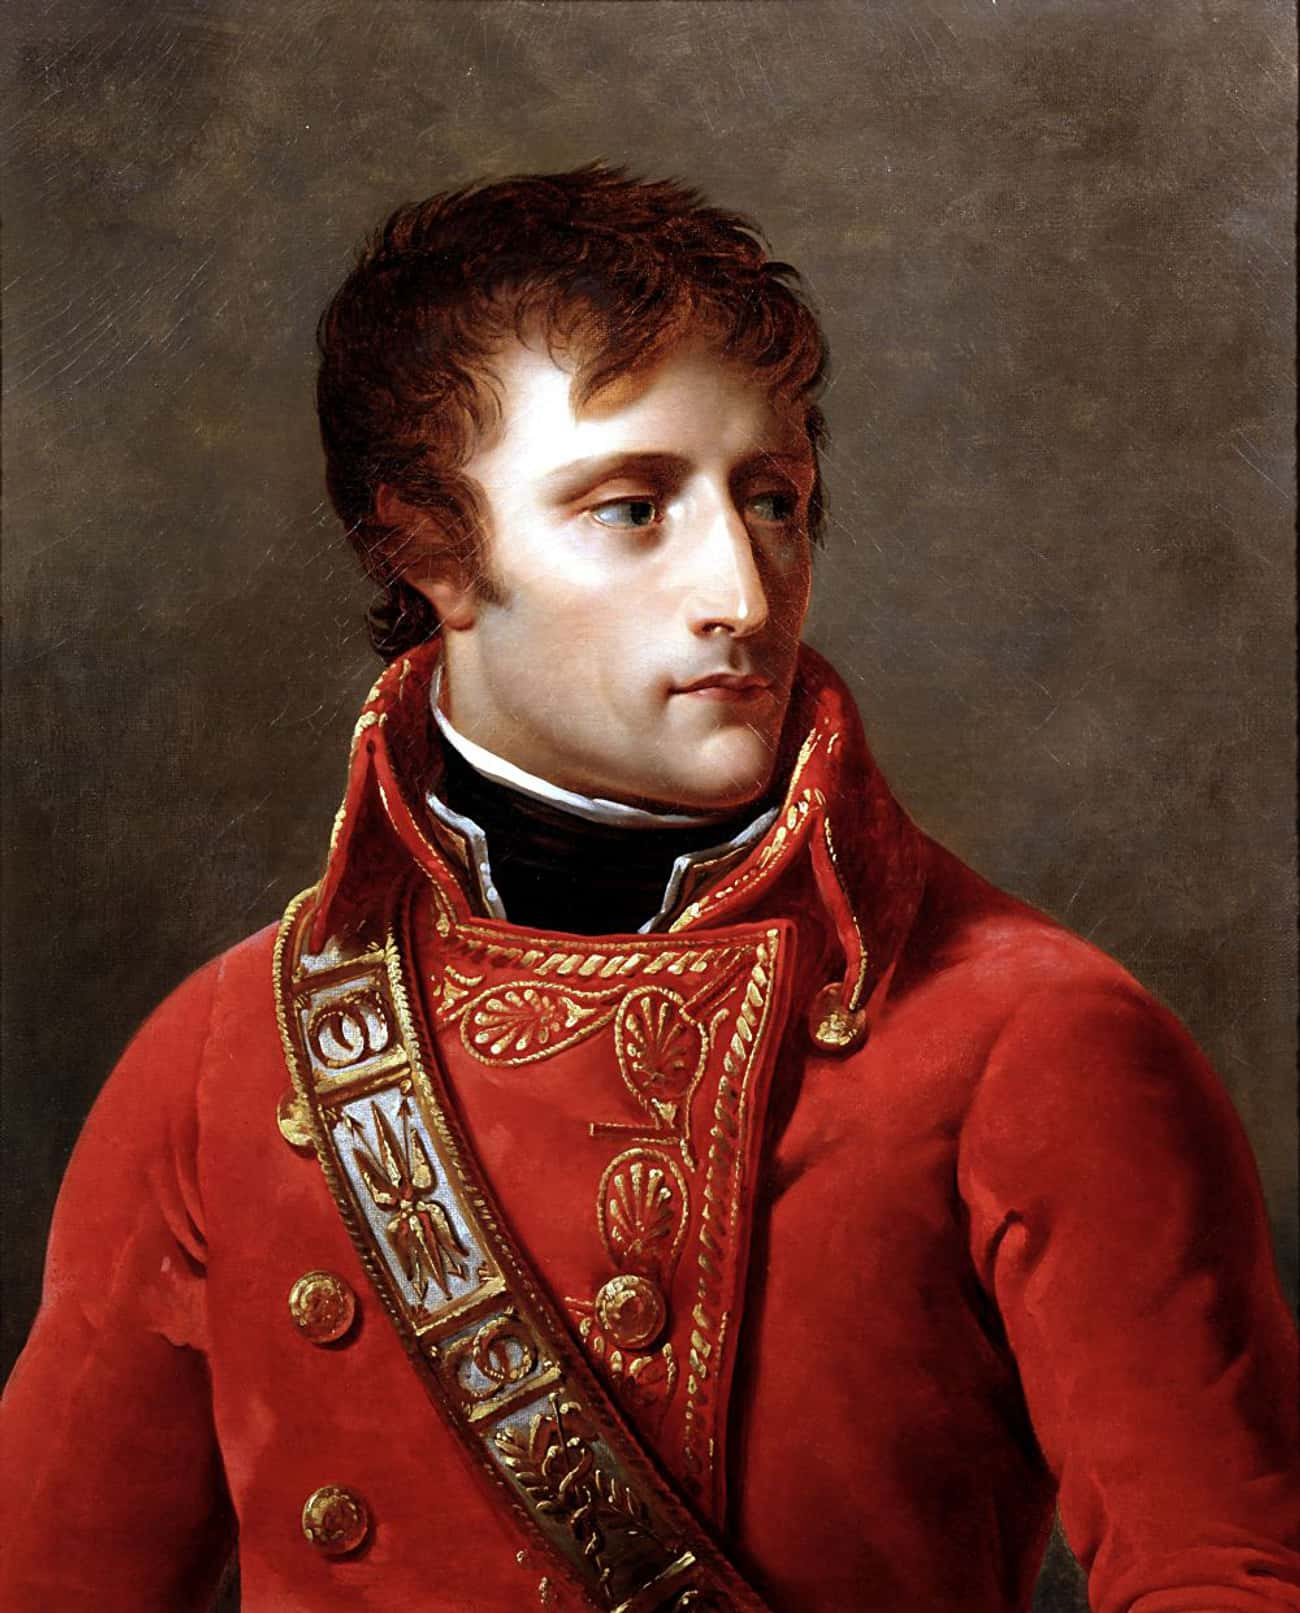 Napoleon Bonaparte Was A Leo is listed (or ranked) 3 on the list Here Are The Zodiac Signs For 16 Historical Figures - And What They Reveal About Their Personalities